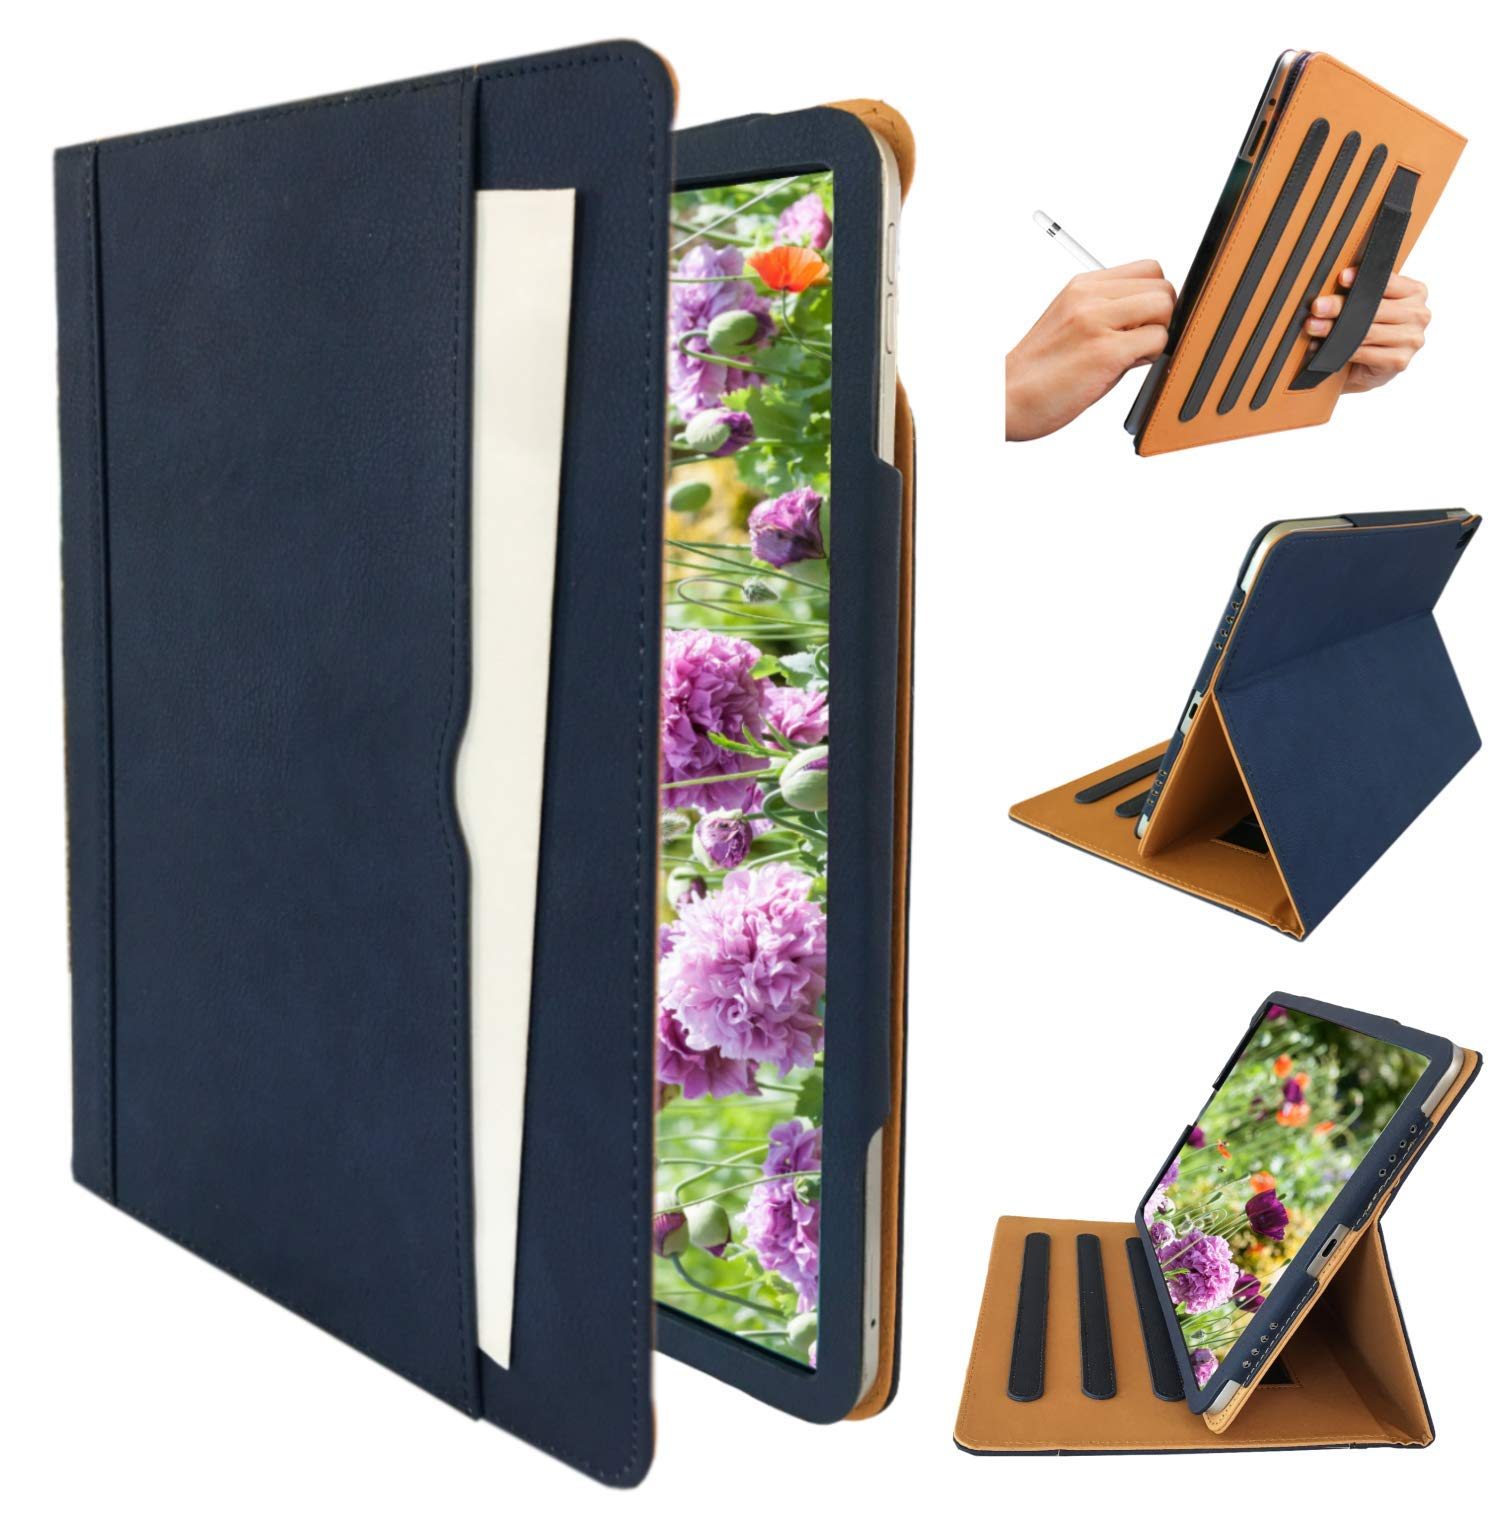 """Black Ipad Case for iPad 9.7"""" 2018/2017 Release Also Fit for iPad Air 1st 2013 Release Models A1893 A1954 A1822 A1823 A1747 A1475 MR6Y2LL/A MR7C2LL/AA MRM82LL/A MRJN2LL/A MRJP2LL/A (Blue)"""